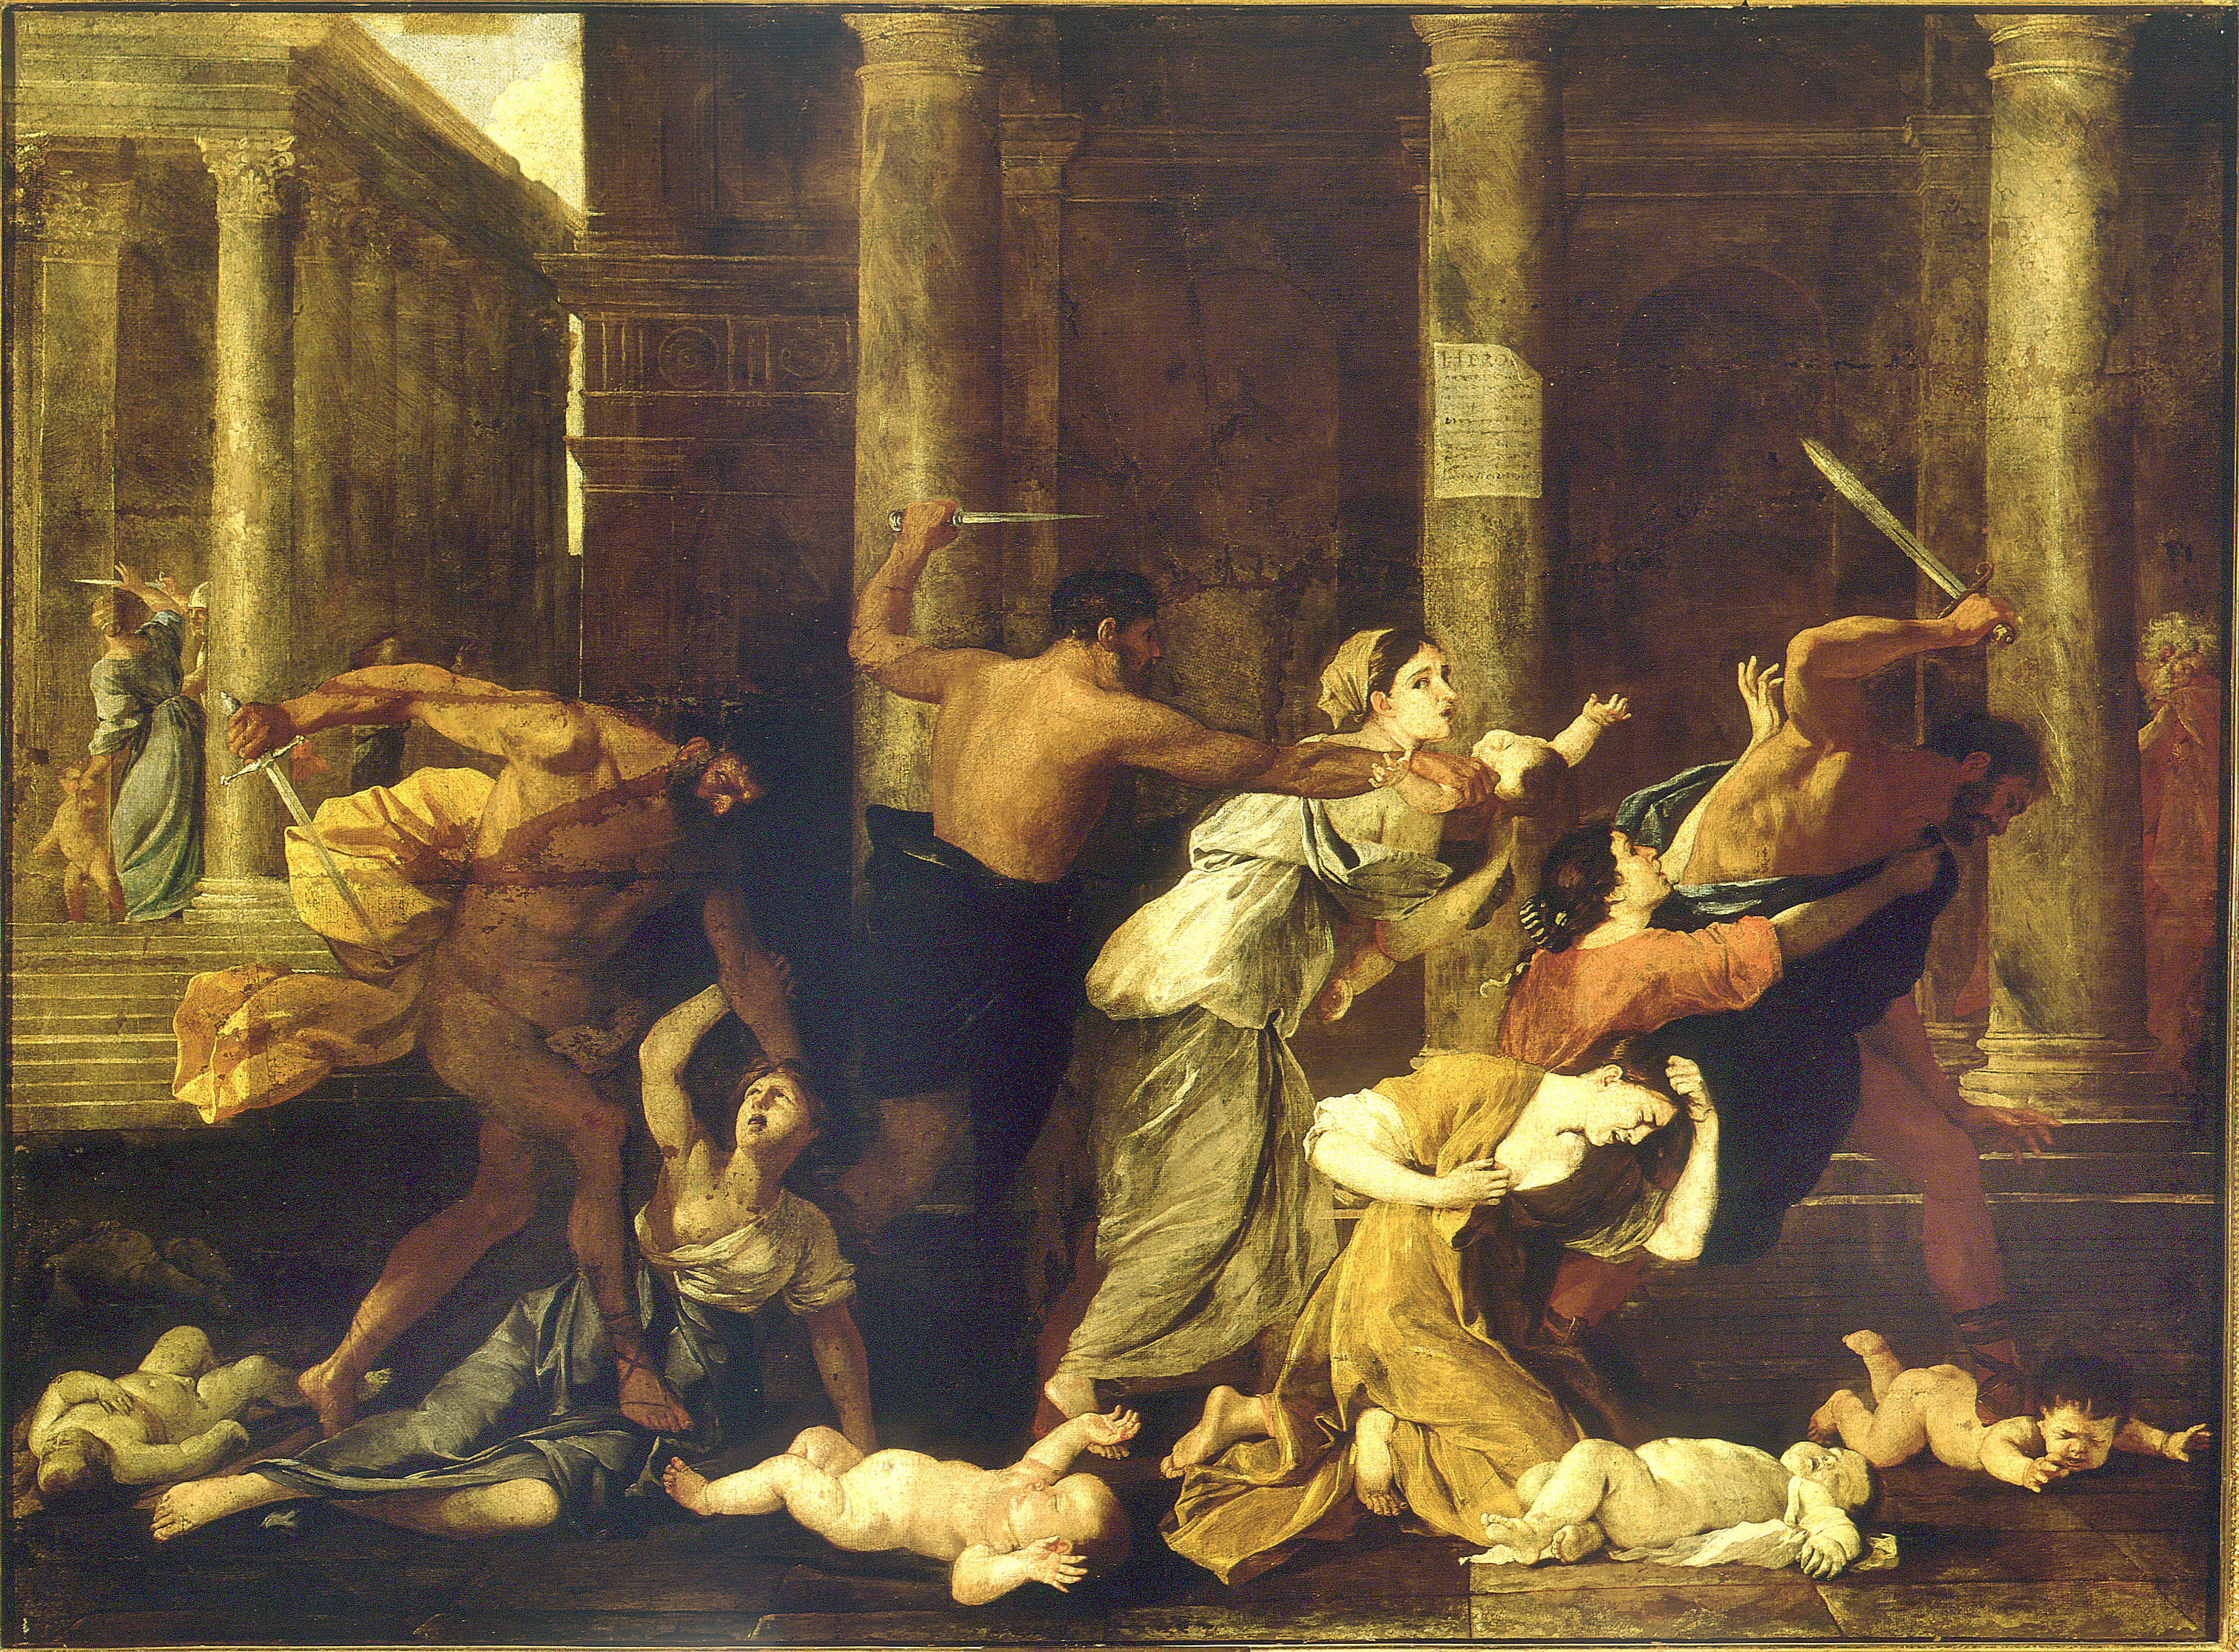 Nicolas Poussin - The Massacre of the Innocents